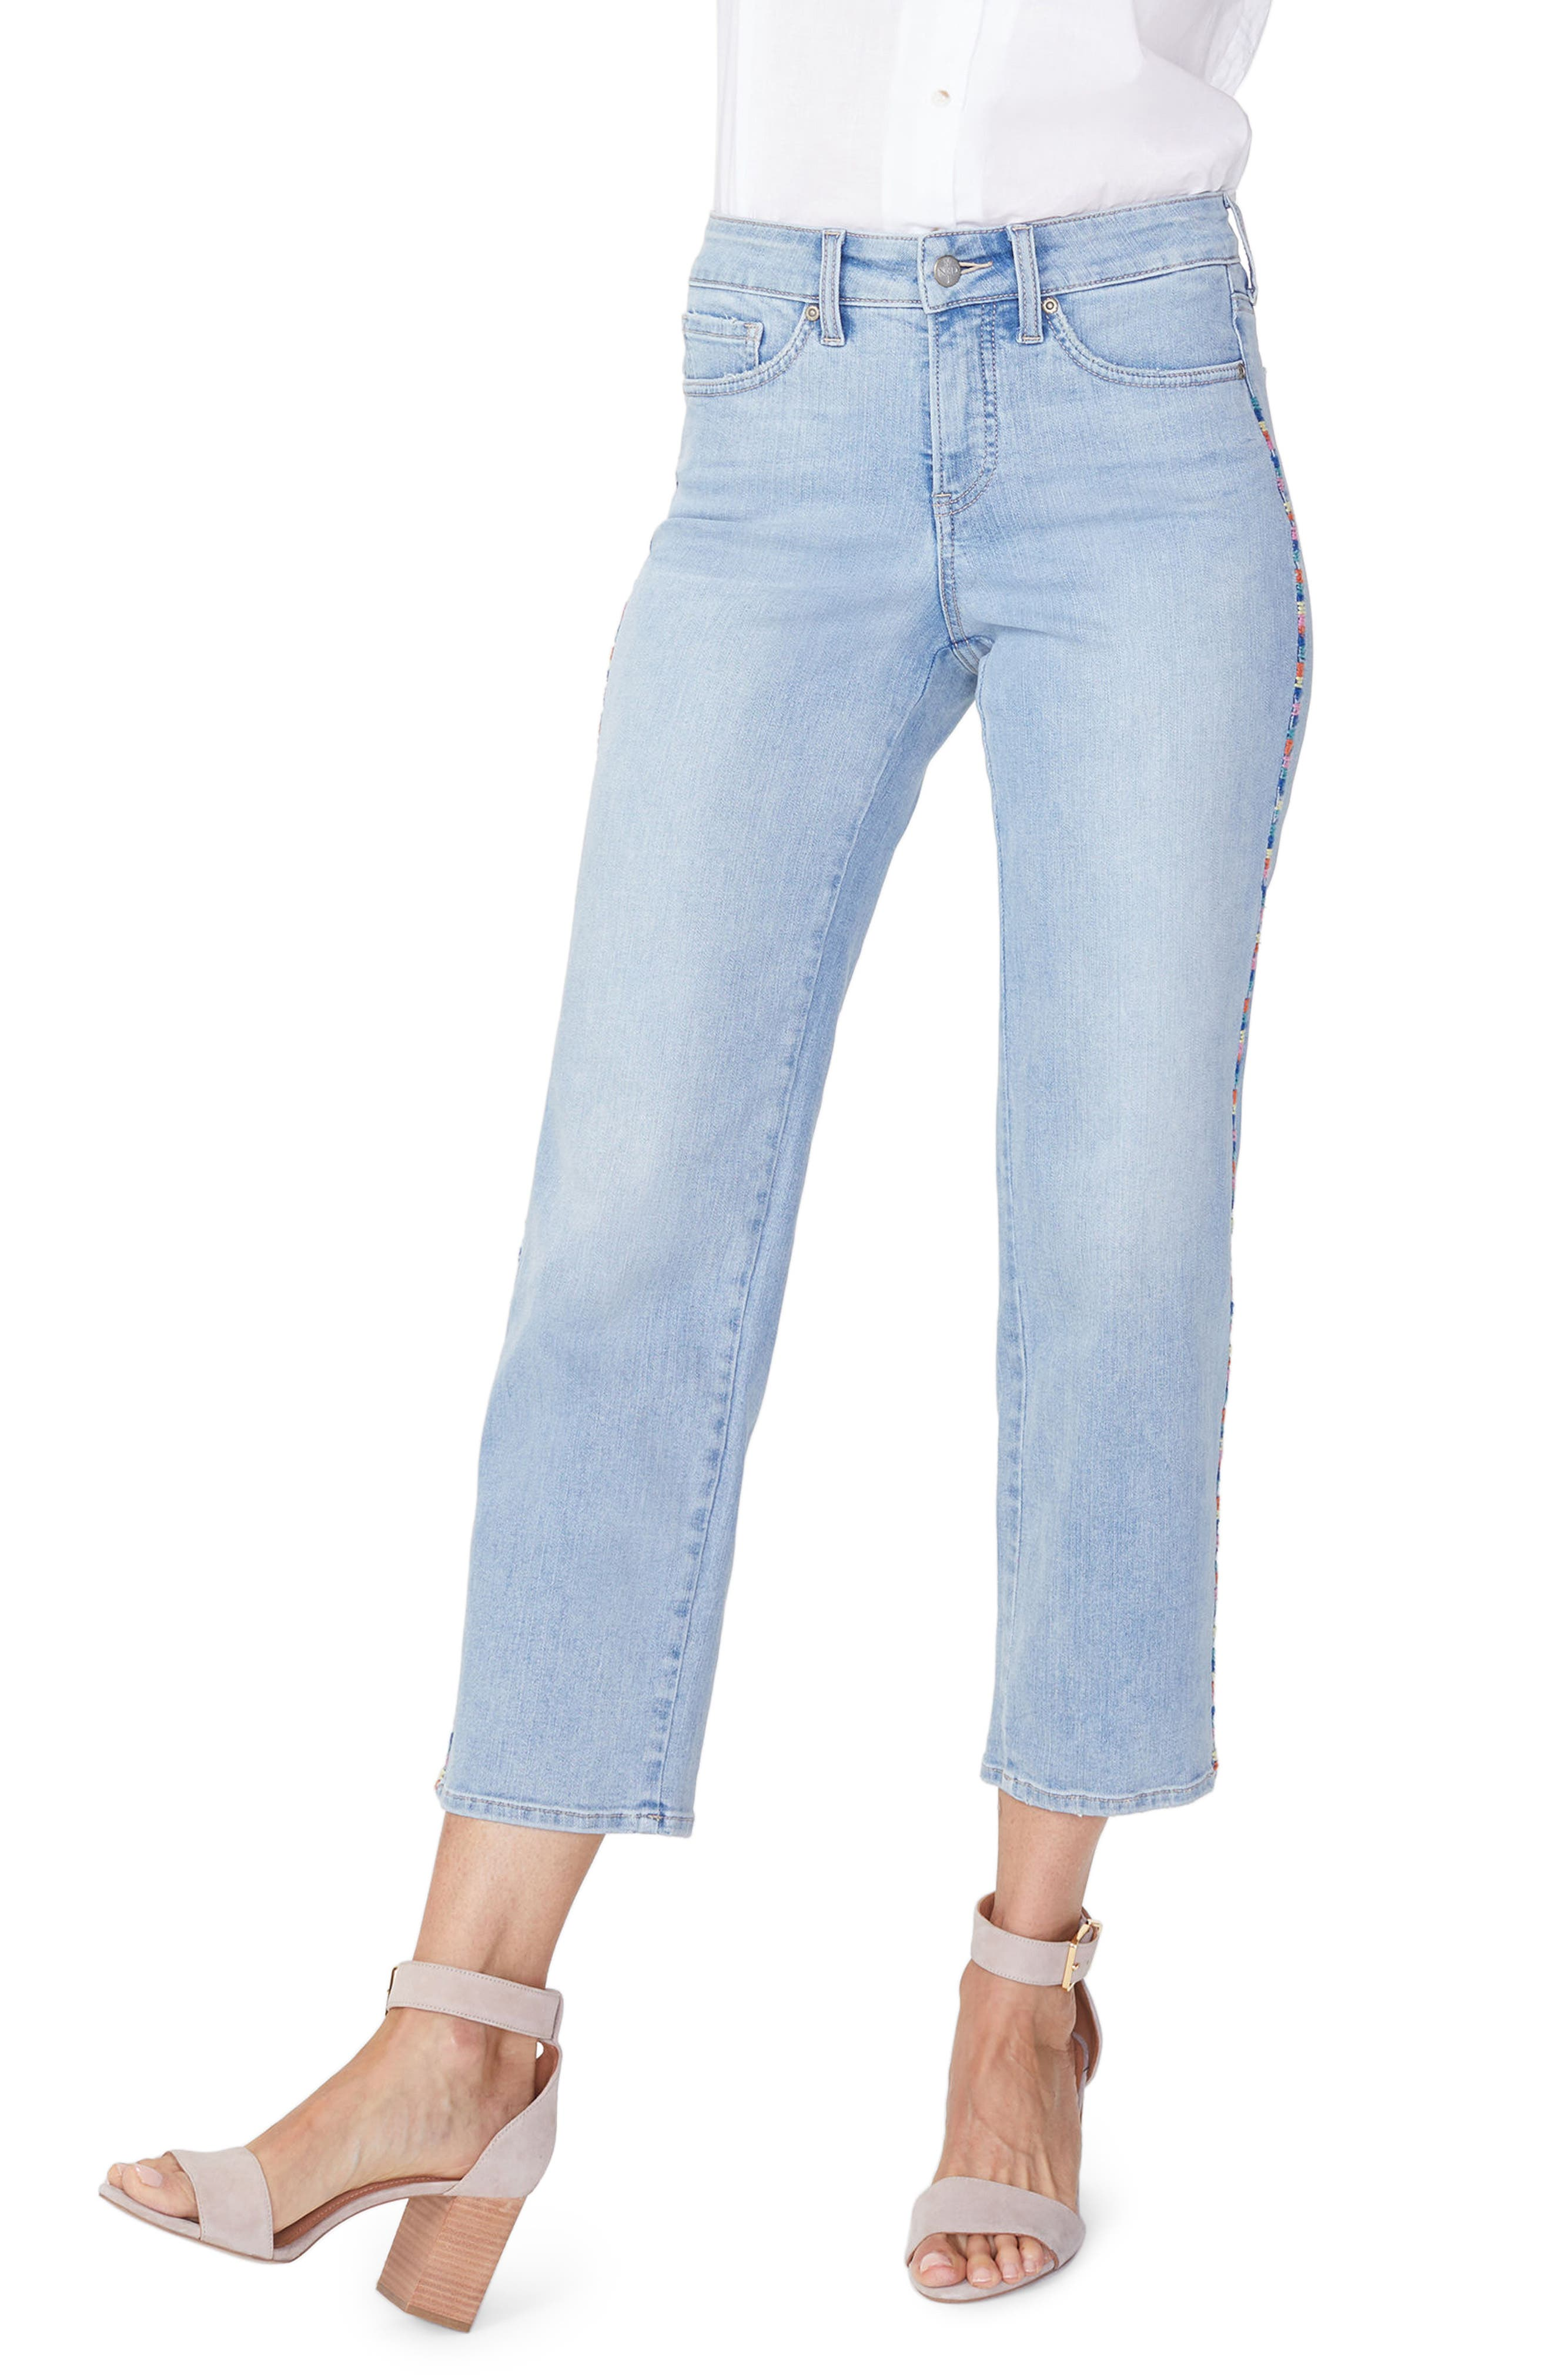 Jenna Embroidered Seam Ankle Straight Leg Jeans,                             Main thumbnail 1, color,                             Clean Cloud Nine